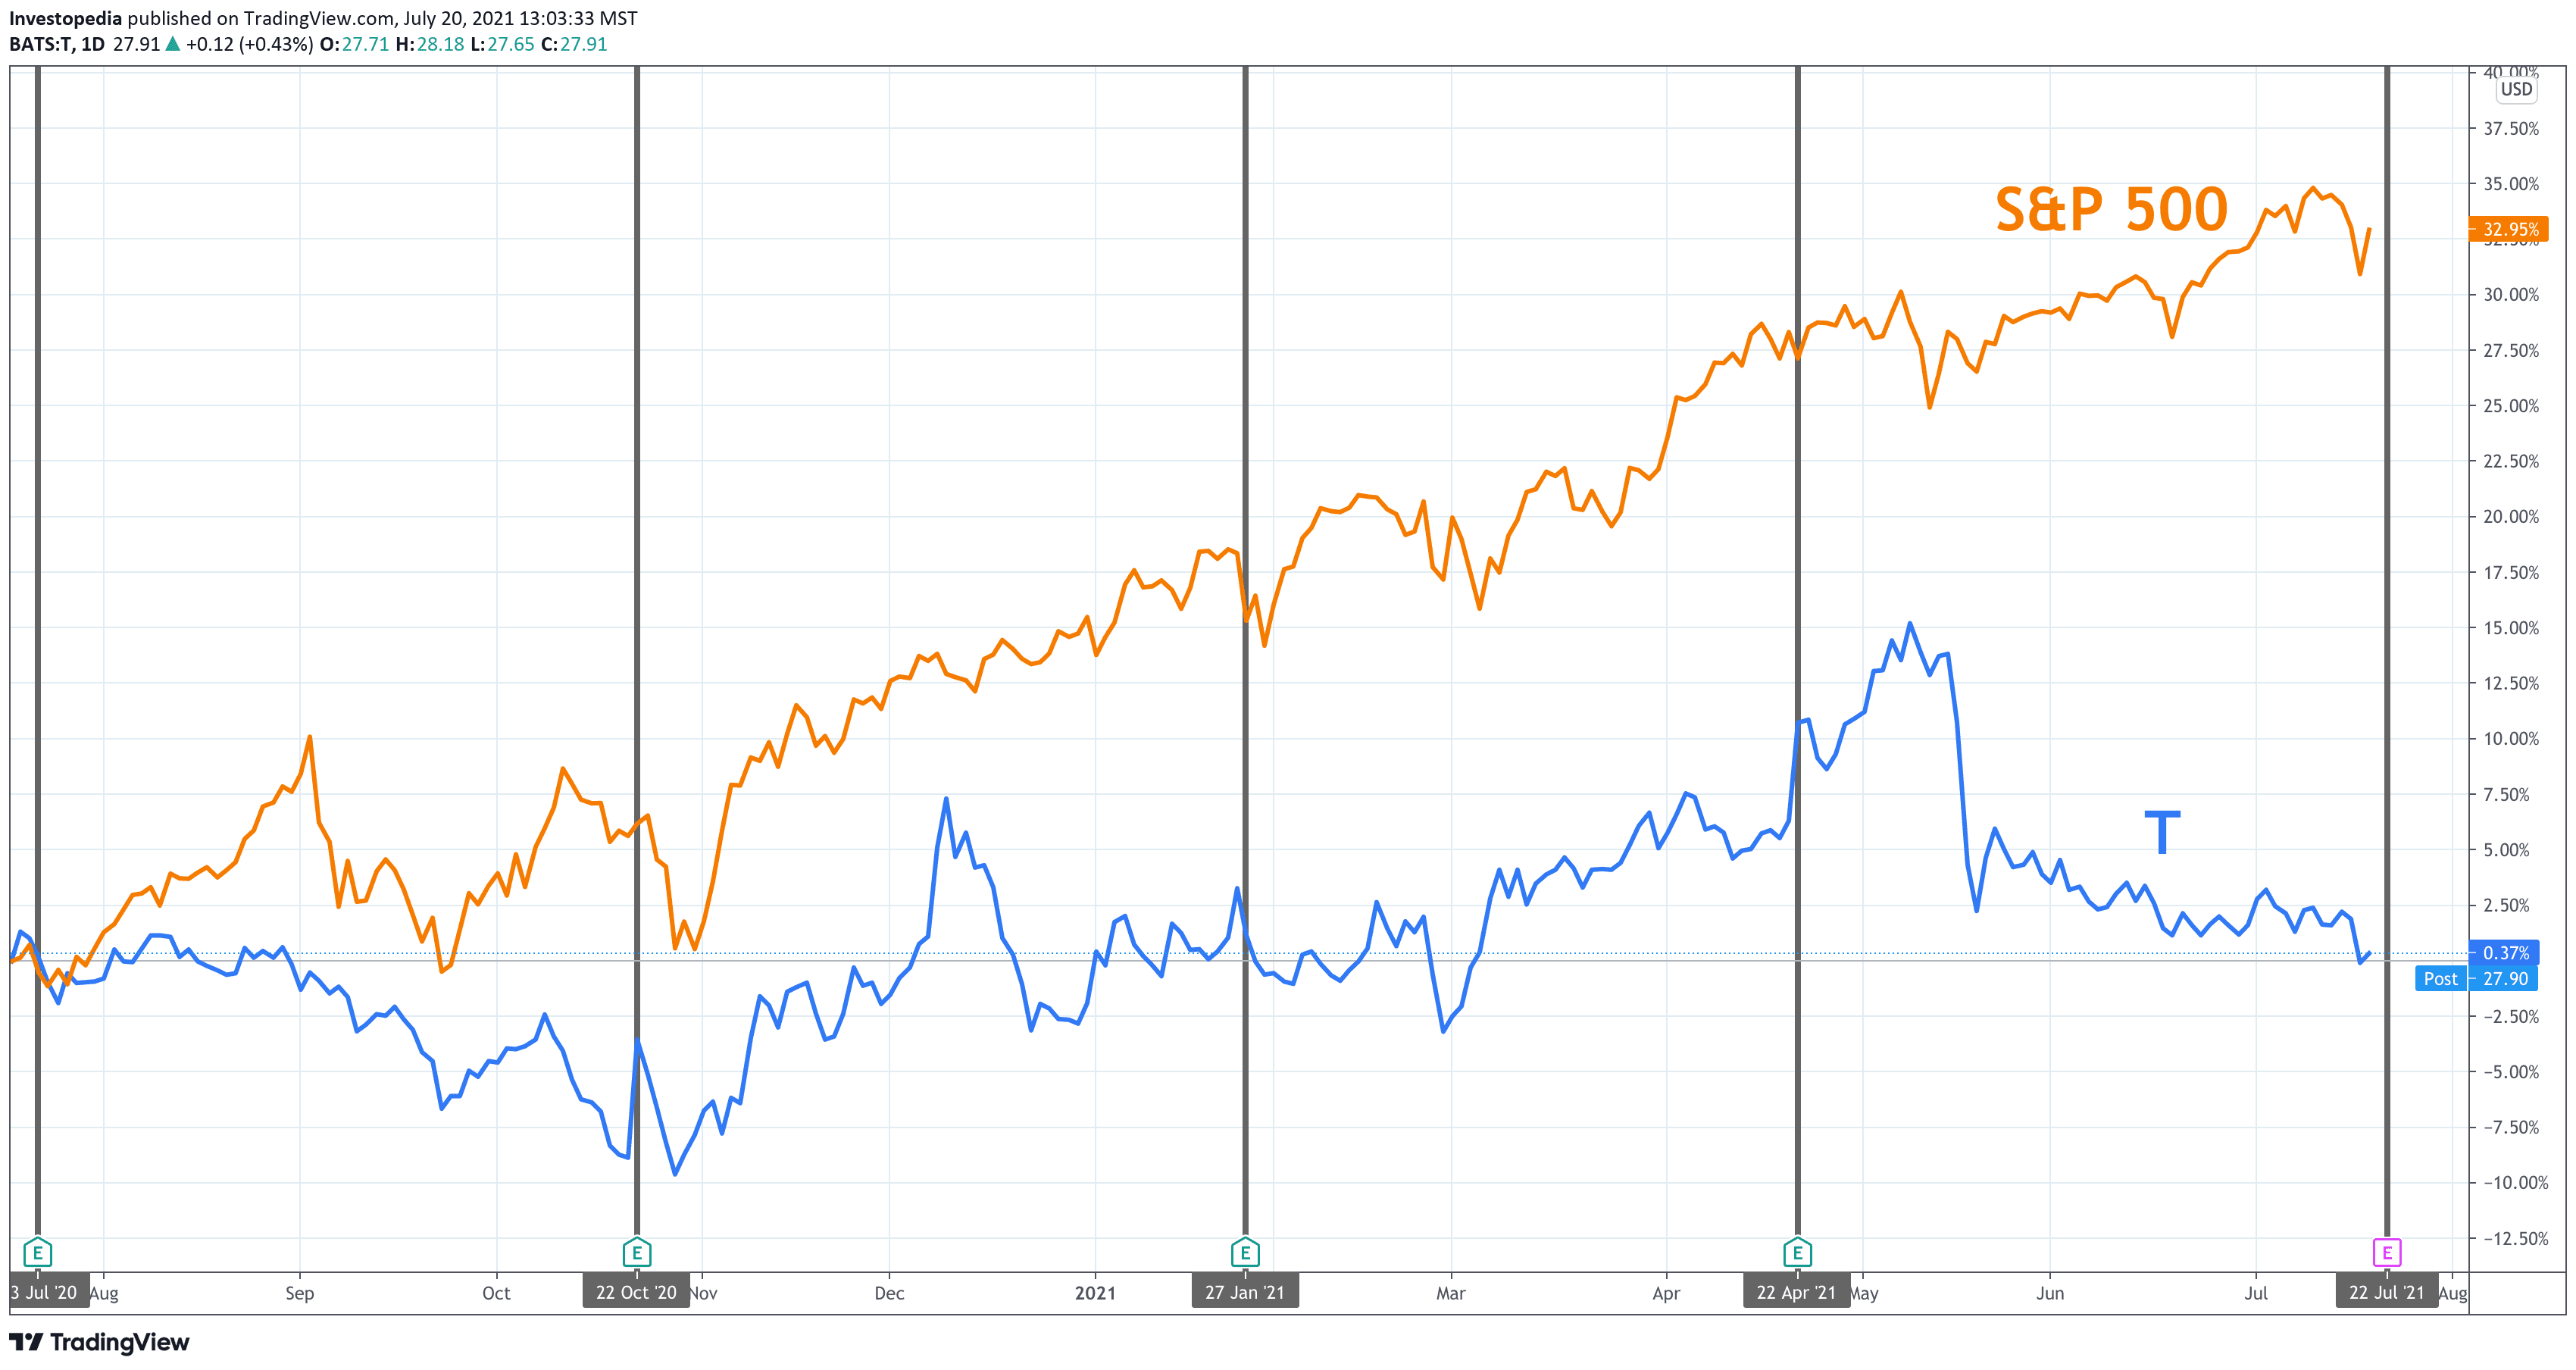 One Year Total Return for S&P 500 and AT&T